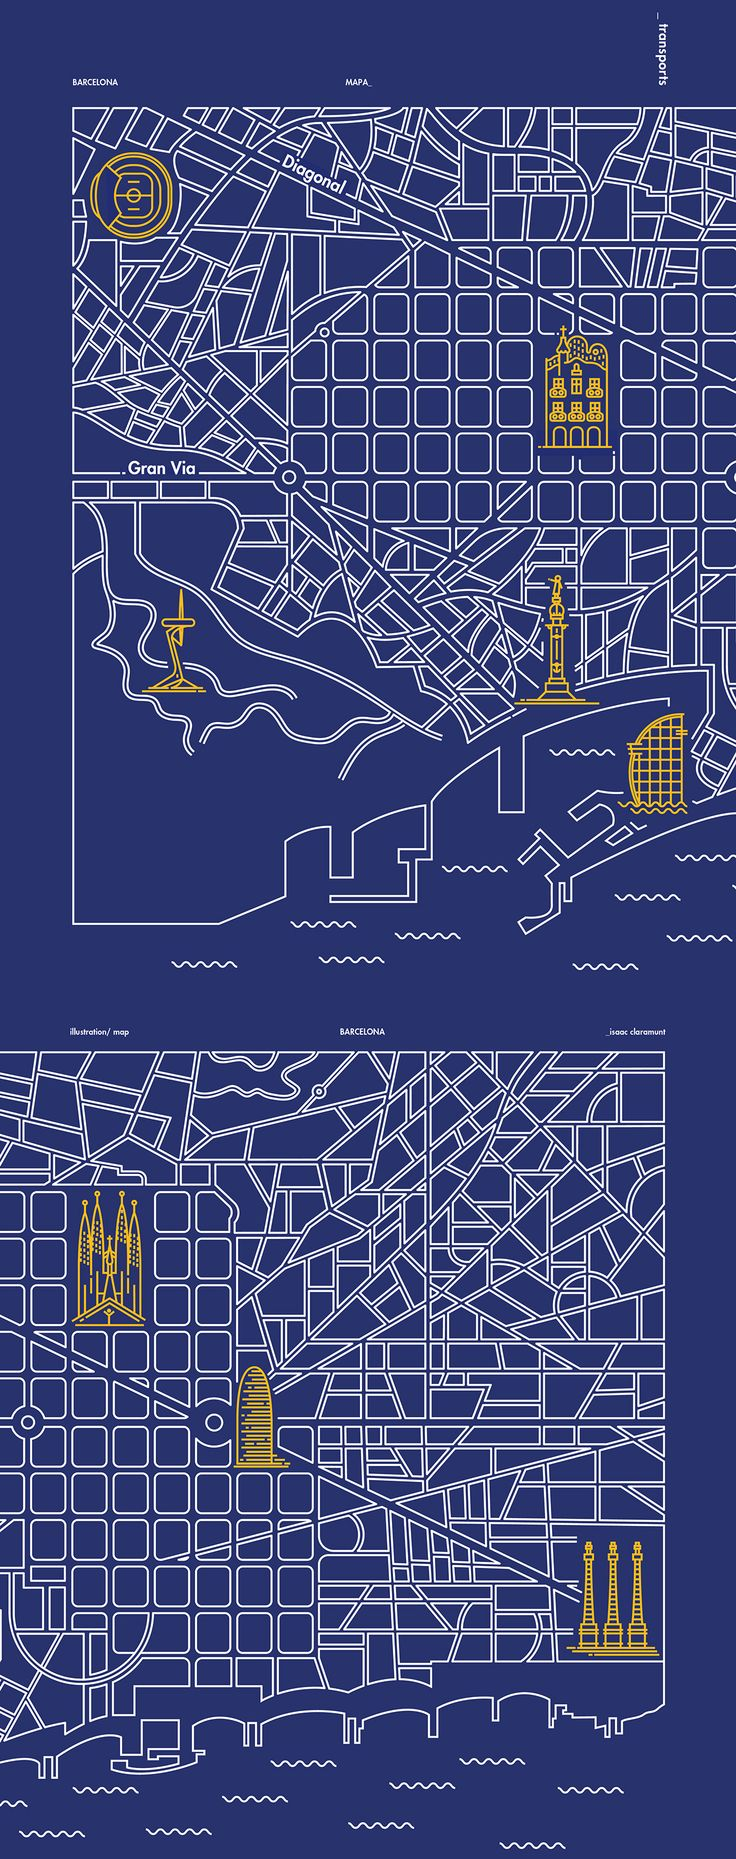 San Francisco Map Attractions Pdf%0A ICONS OF BARCELONA on Editorial Design Served